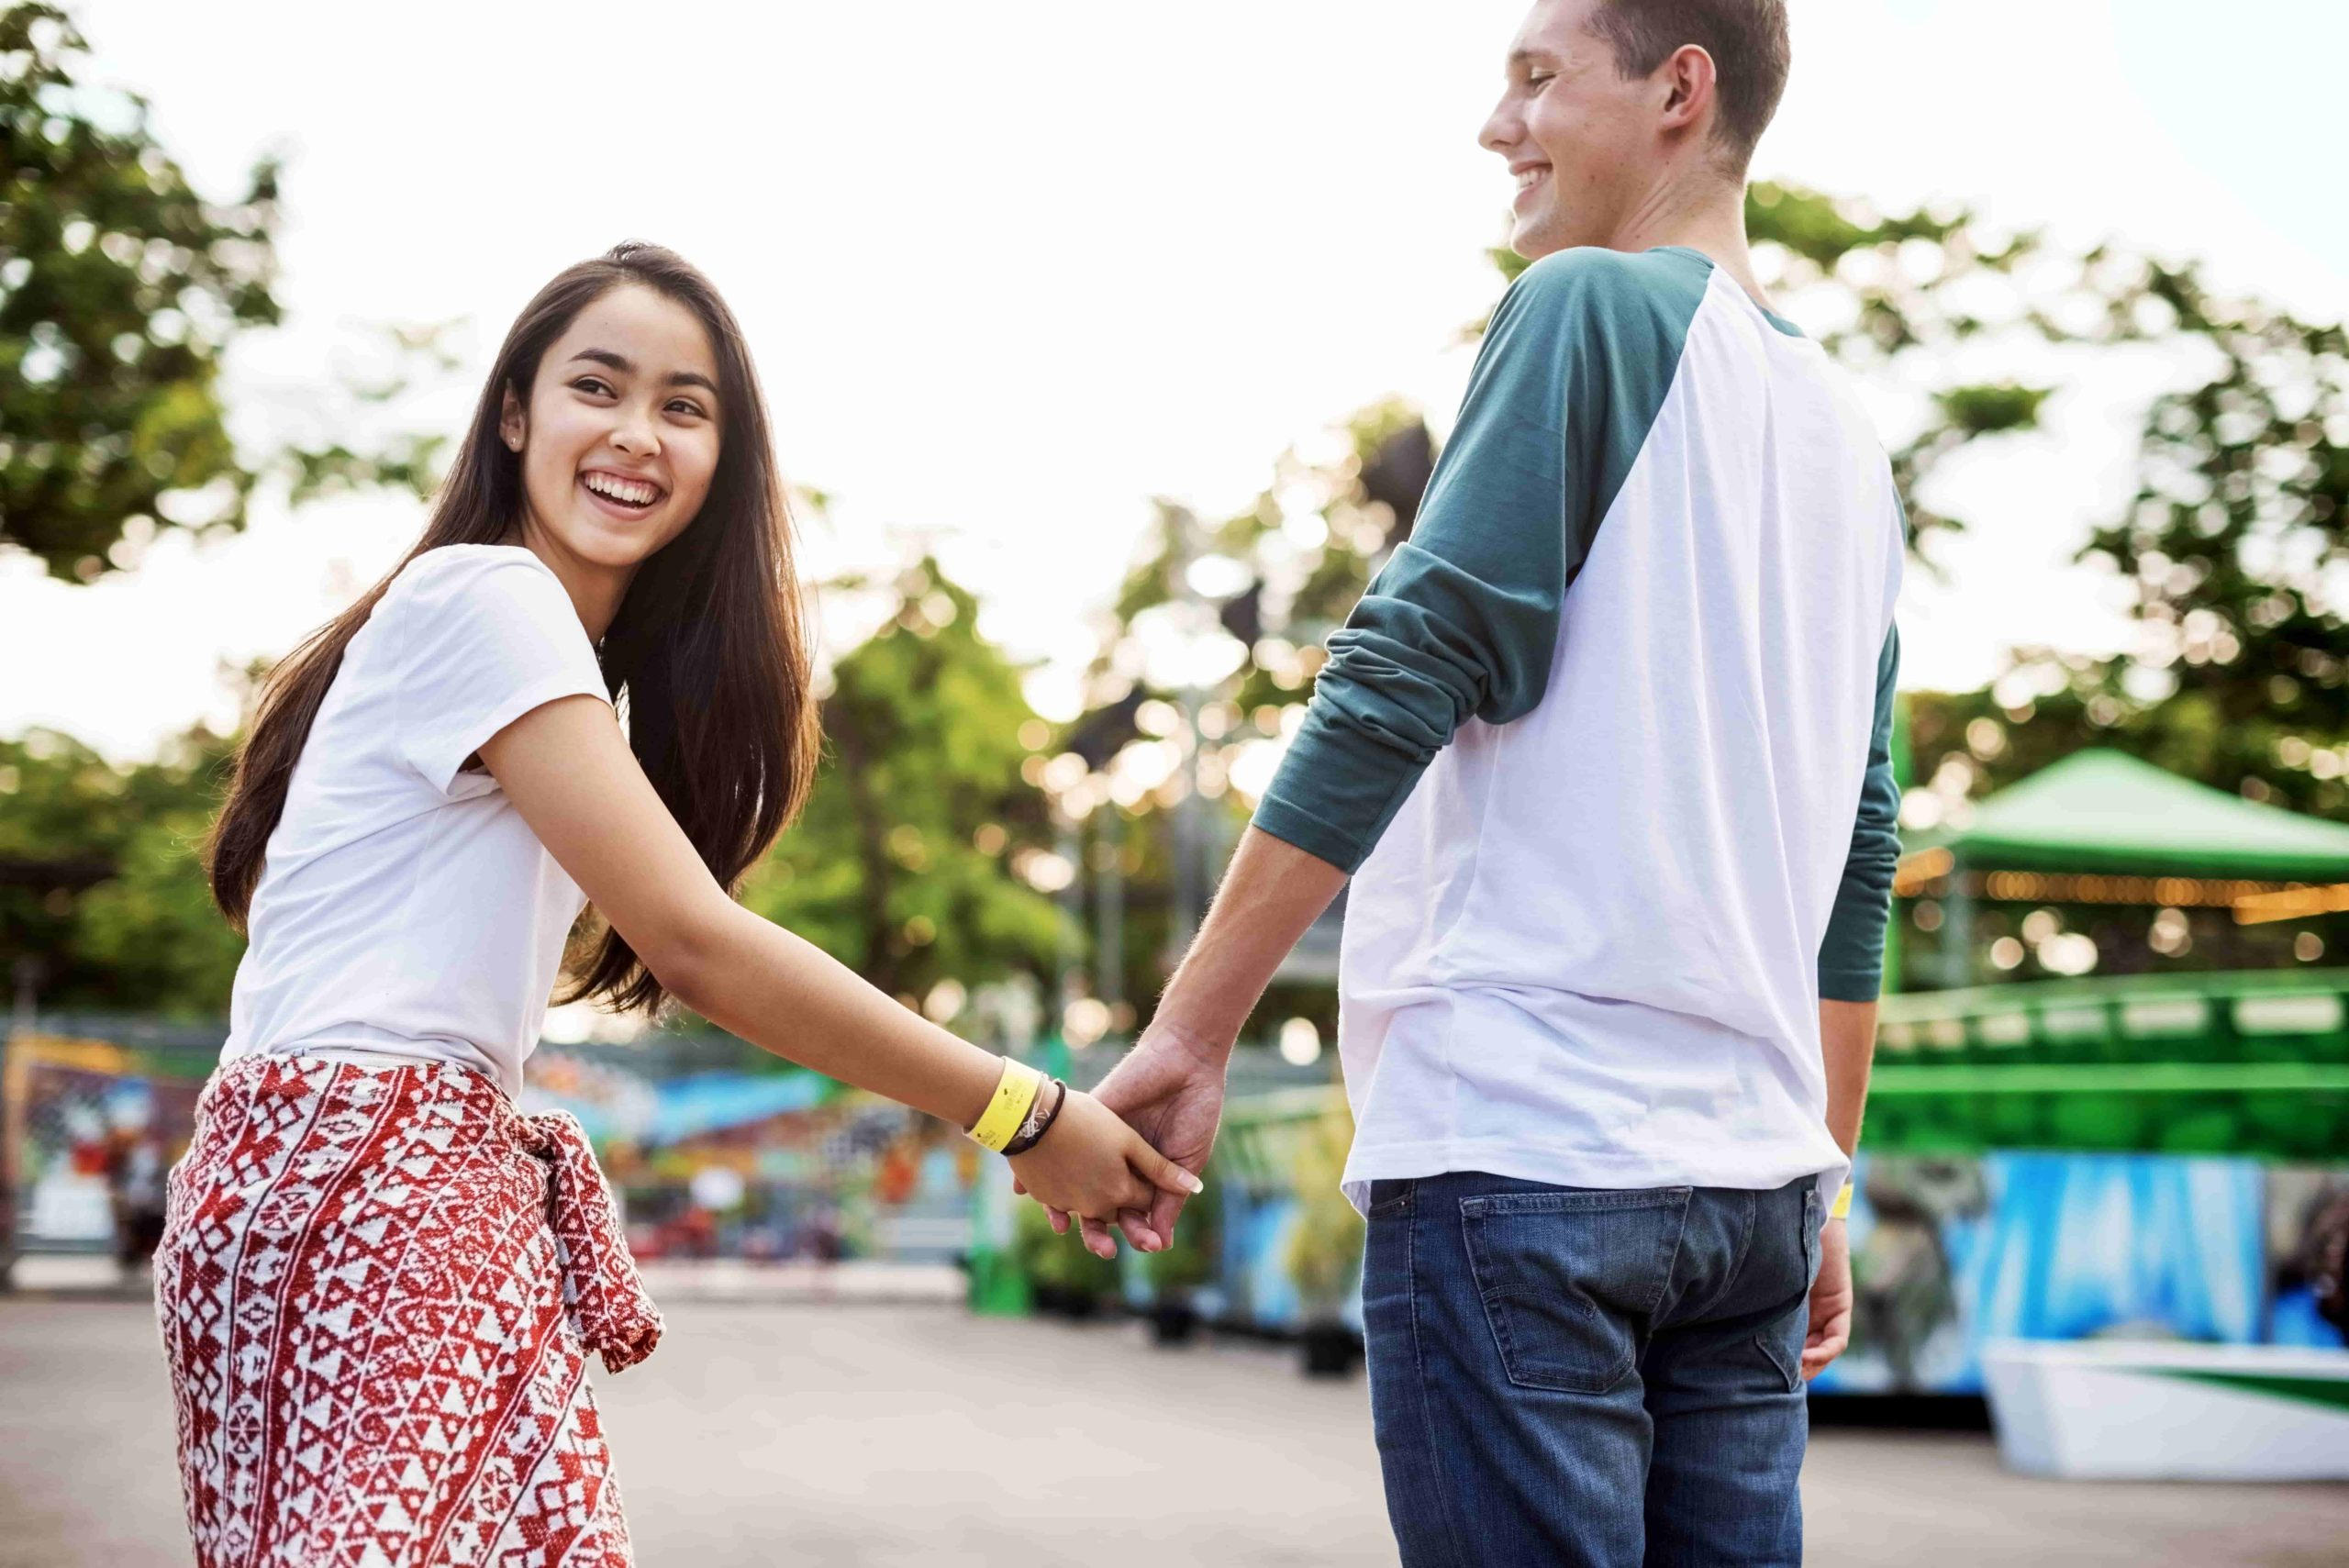 Here's How To Cutely Ask A Guy To Be Your Boyfriend